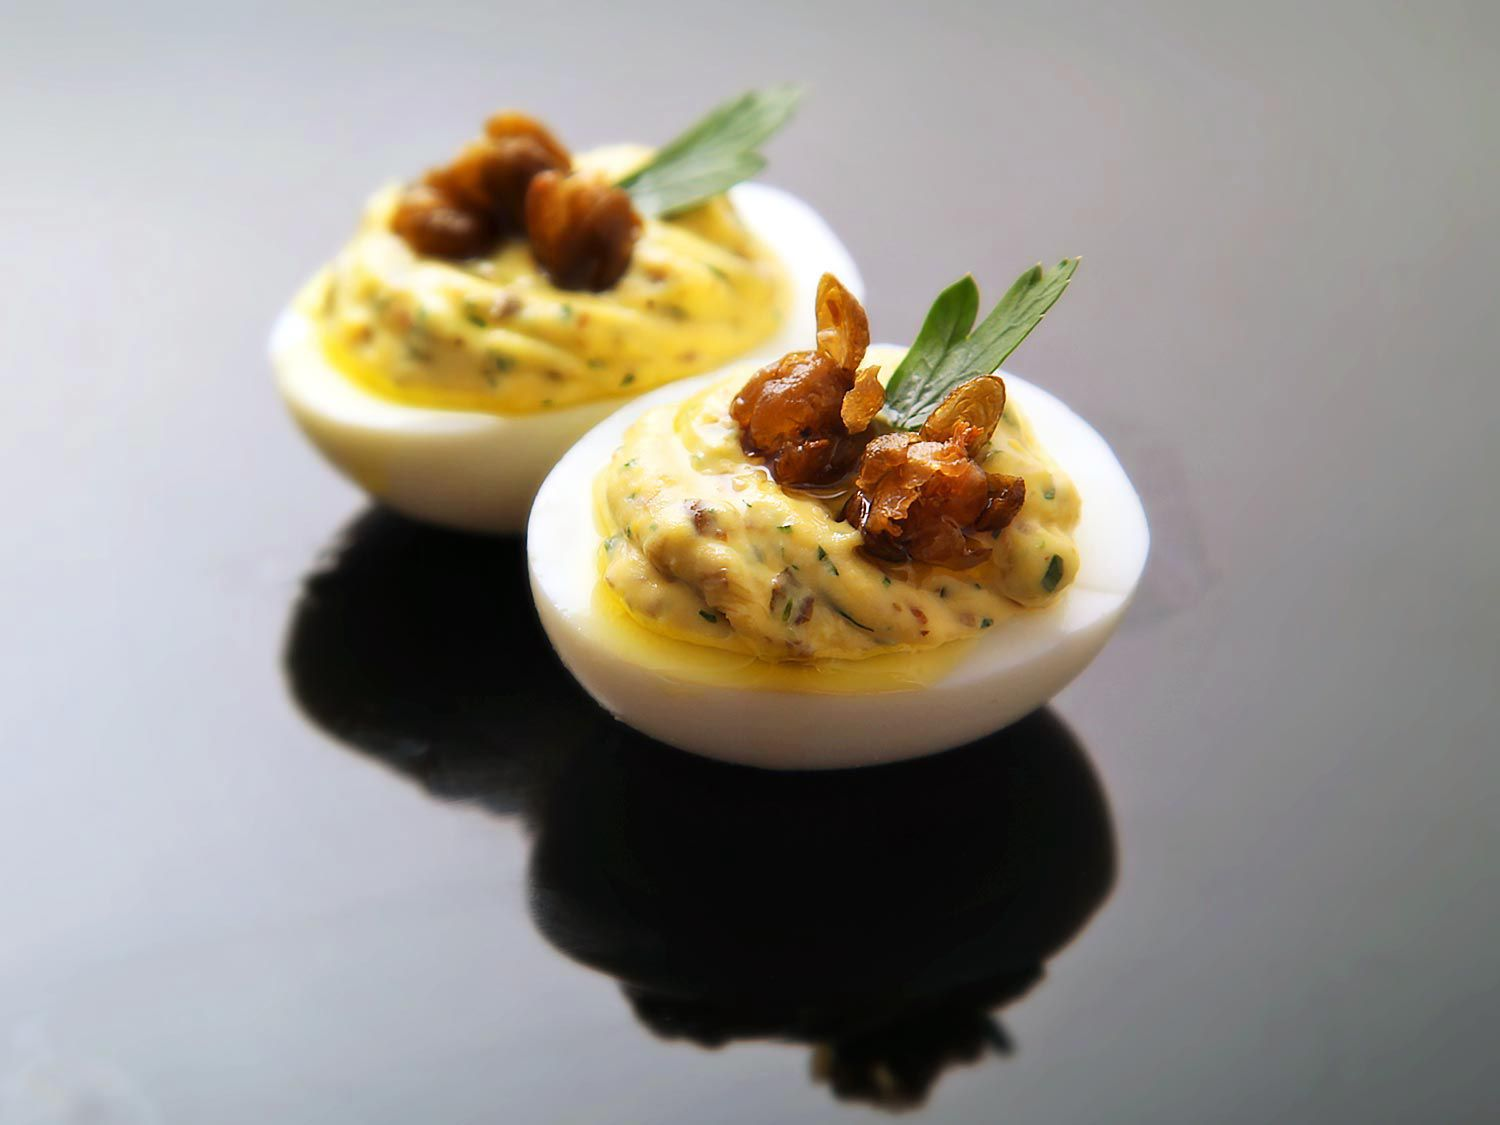 Deviled eggs with fried capers